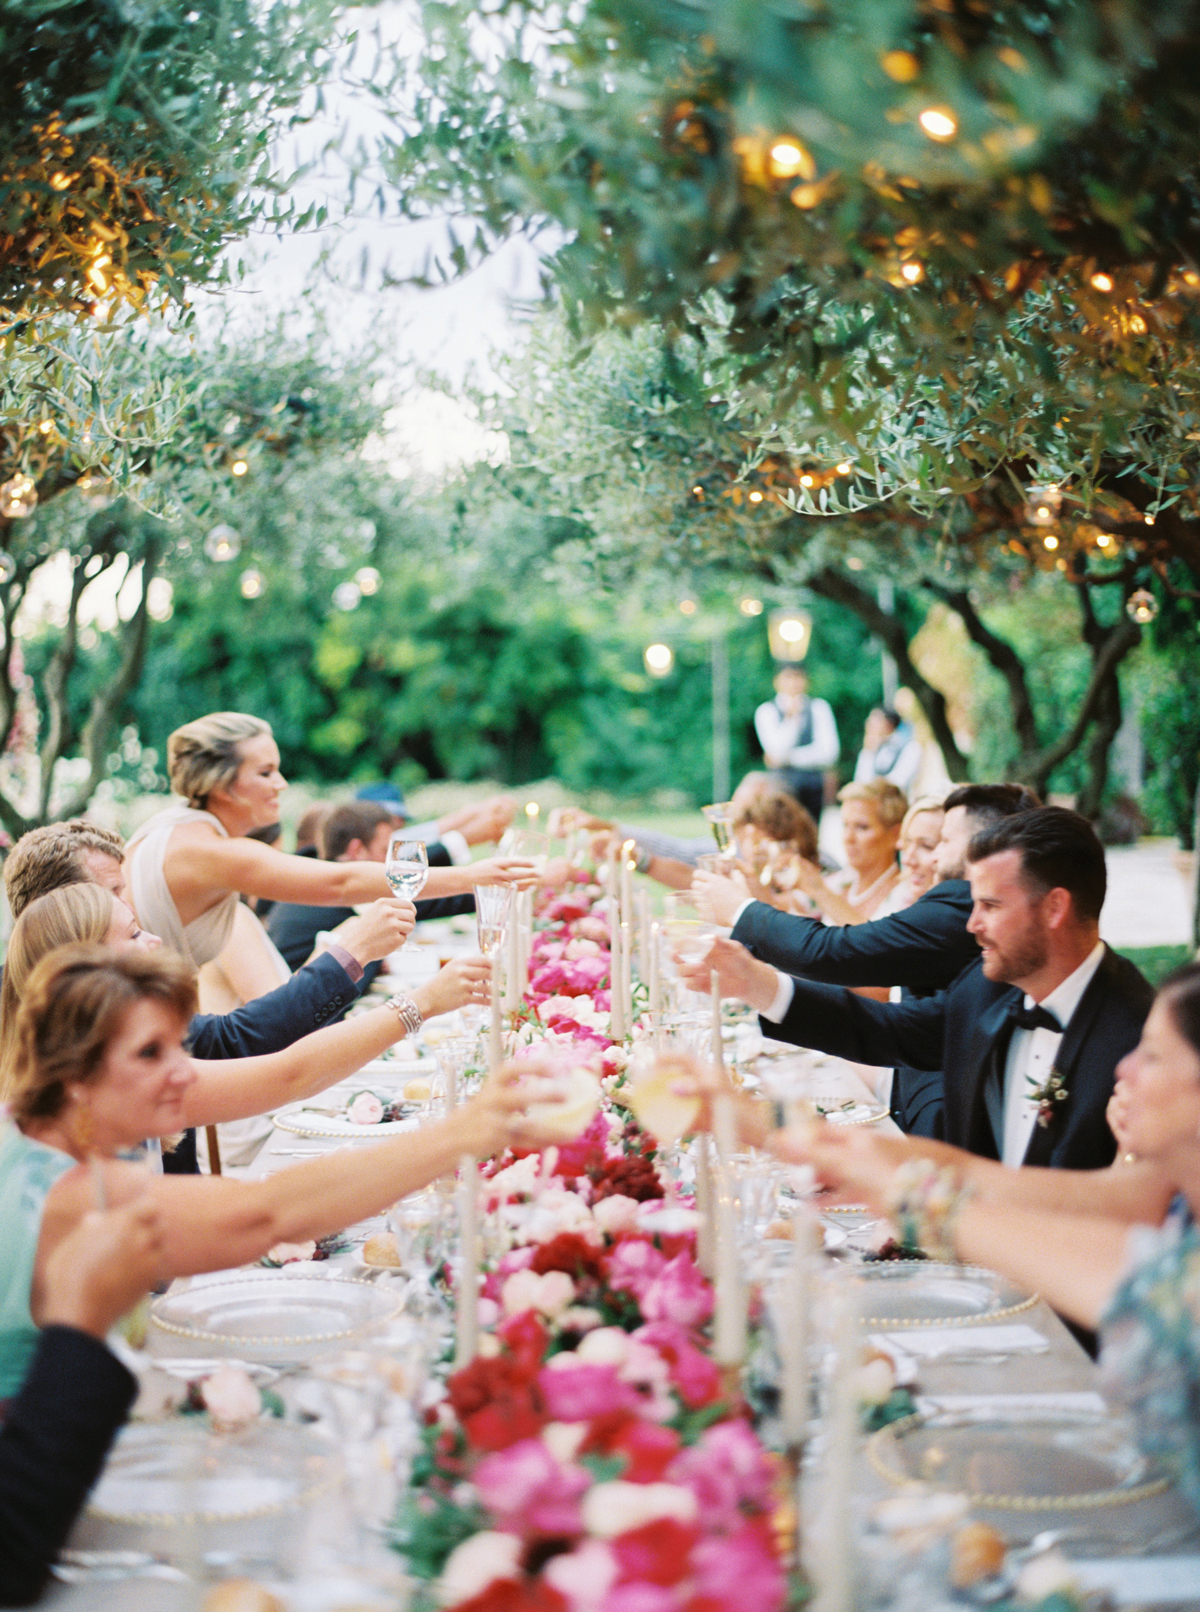 Should All Single Guests Get a Plus-One for a Destination Wedding?